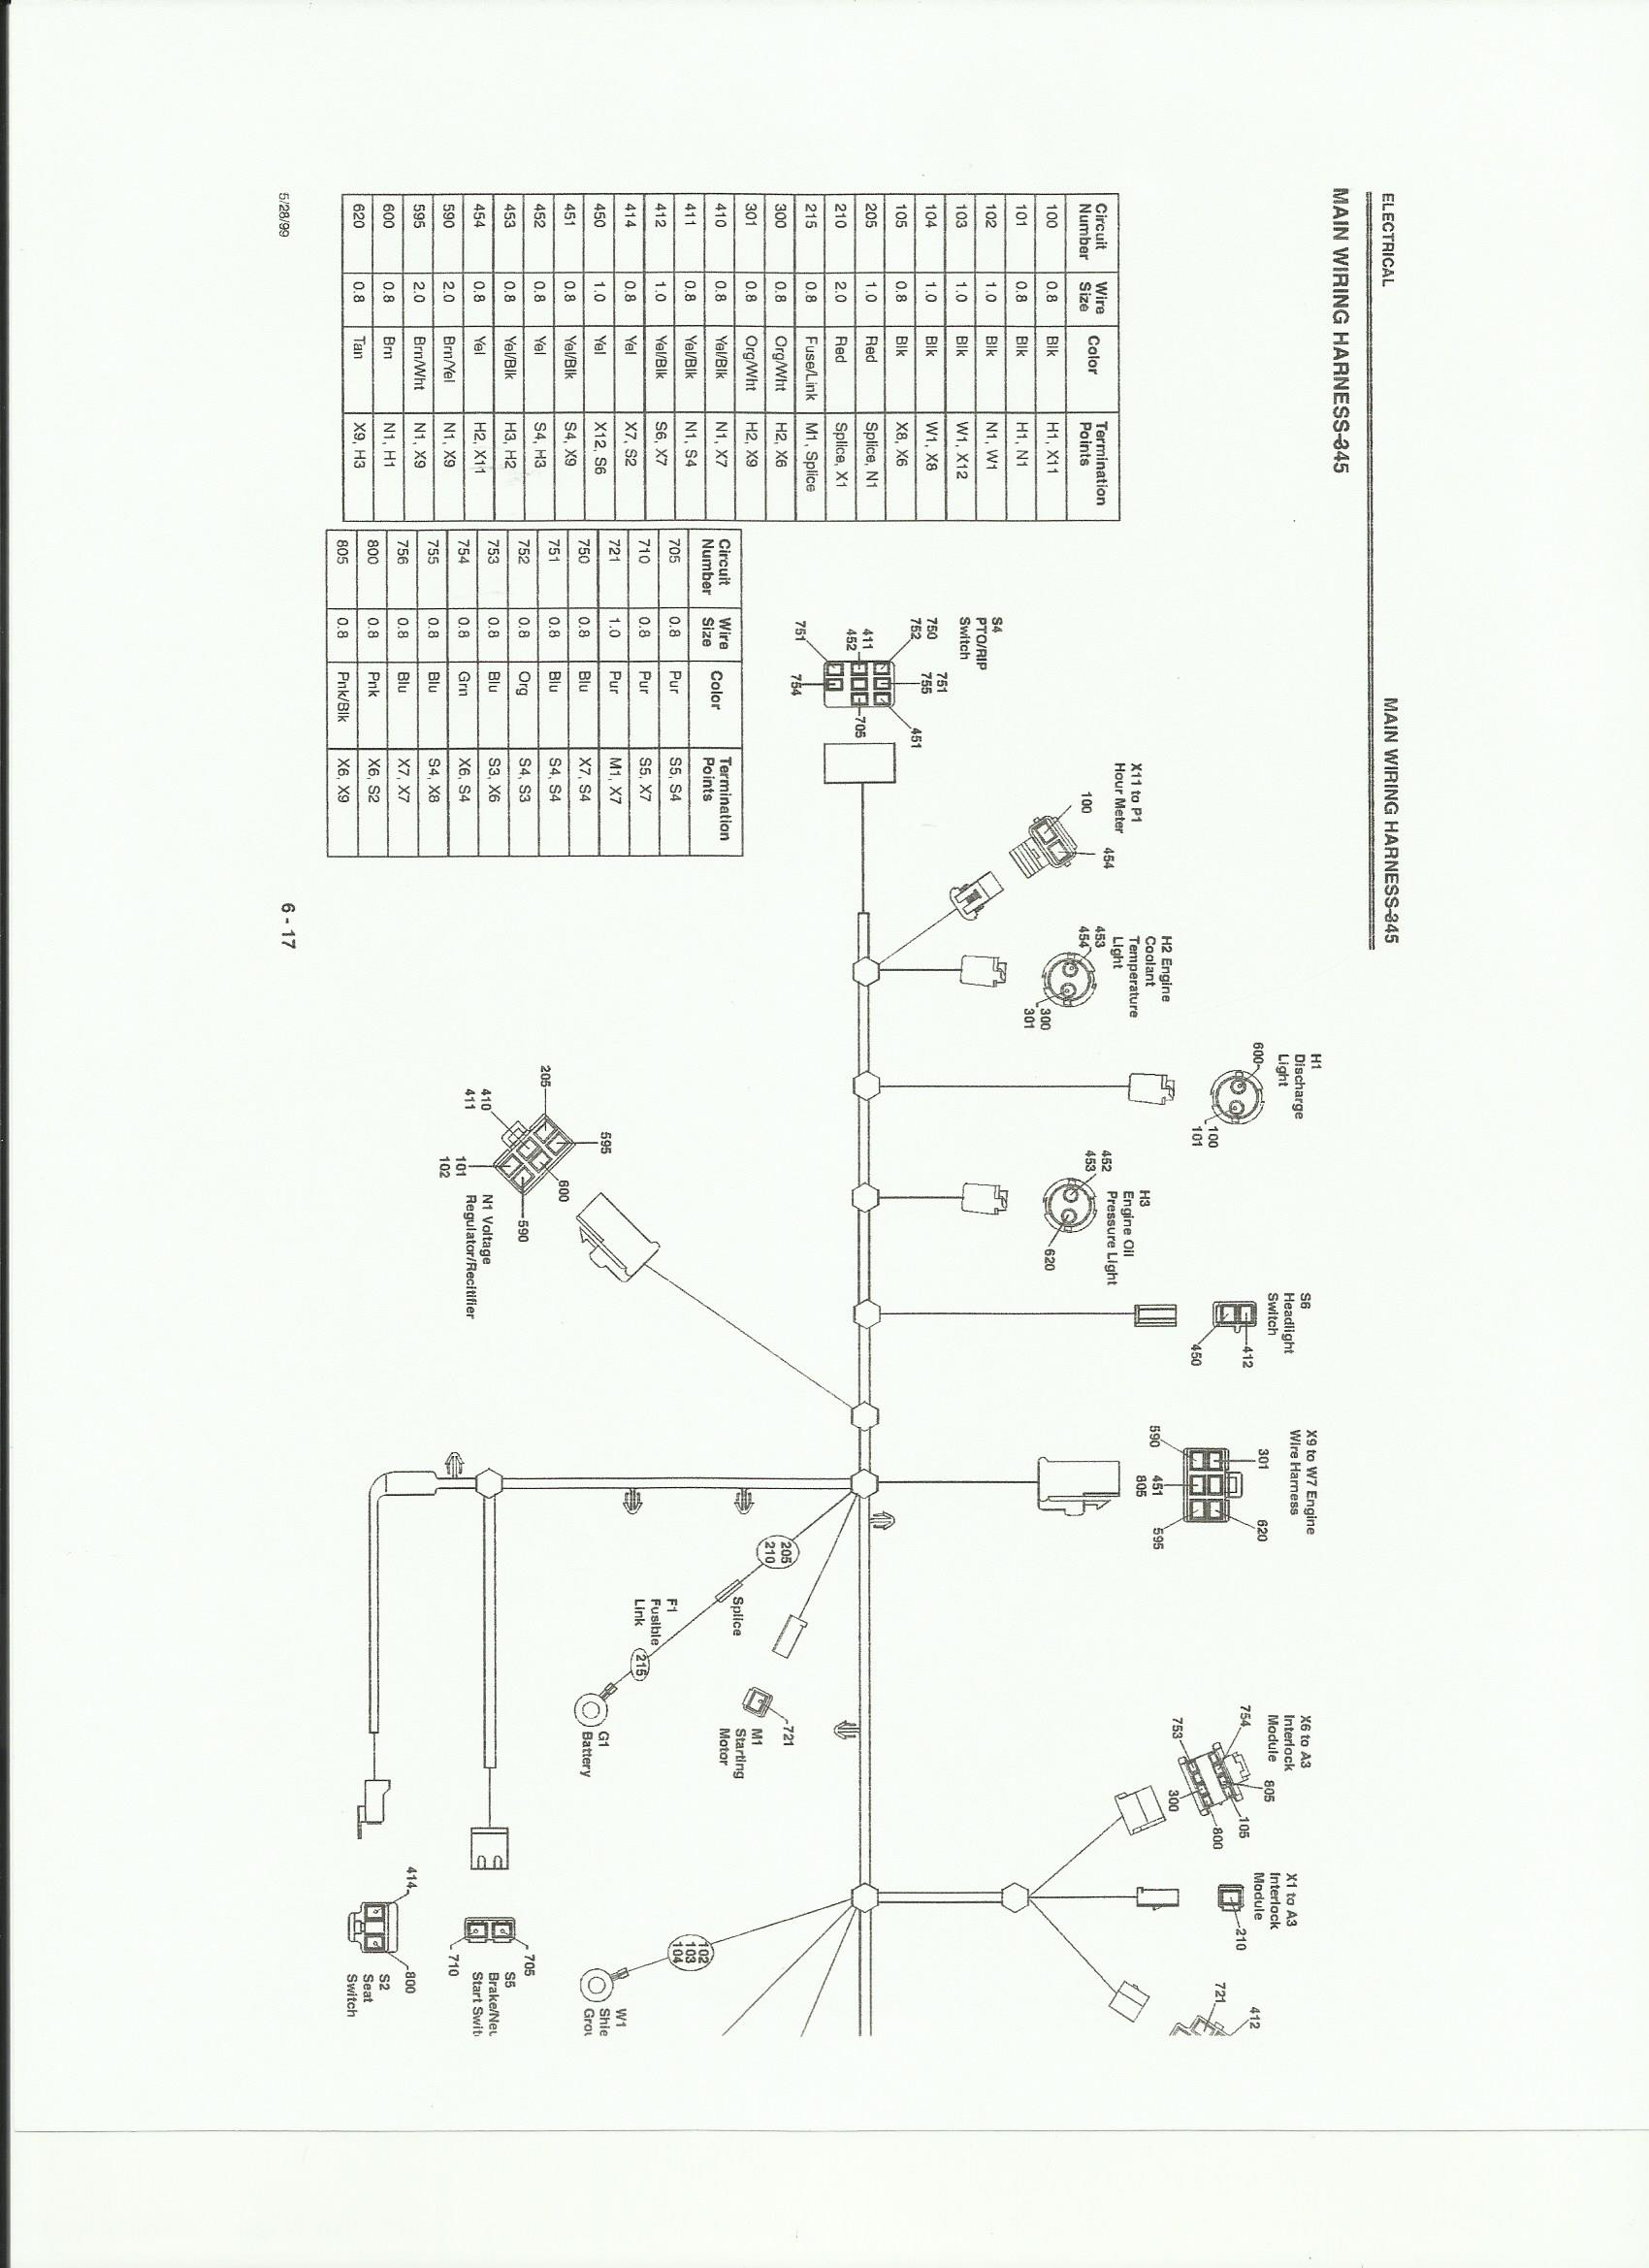 Need a 345 wiring diagram .pdf please - MyTractorForum.com - The ...